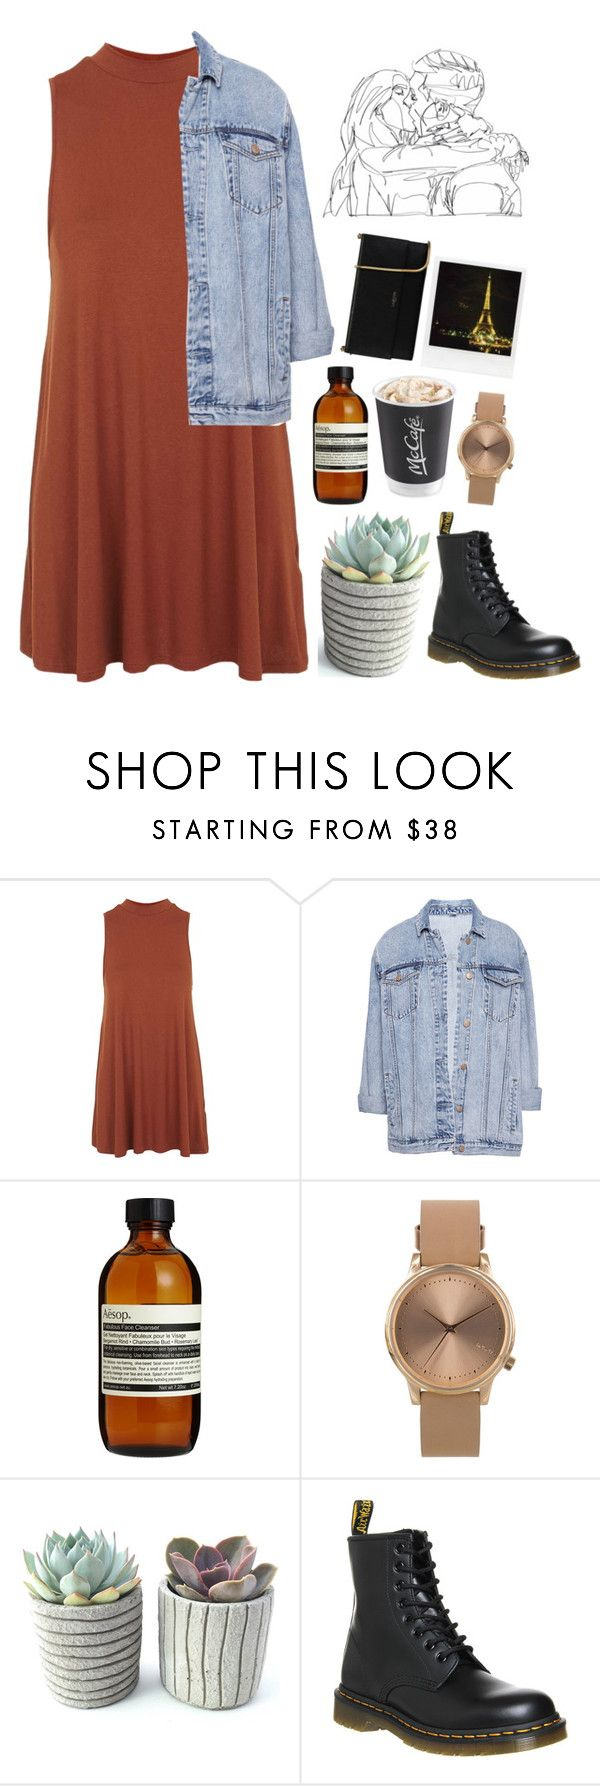 """The Lonesome Death Of Hattie Carroll//Cage The Elephant"" by thelonelyheartsclub ❤ liked on Polyvore featuring Topshop, Pull&Bear, Aesop, Dr. Martens, Polaroid and Lanvin"